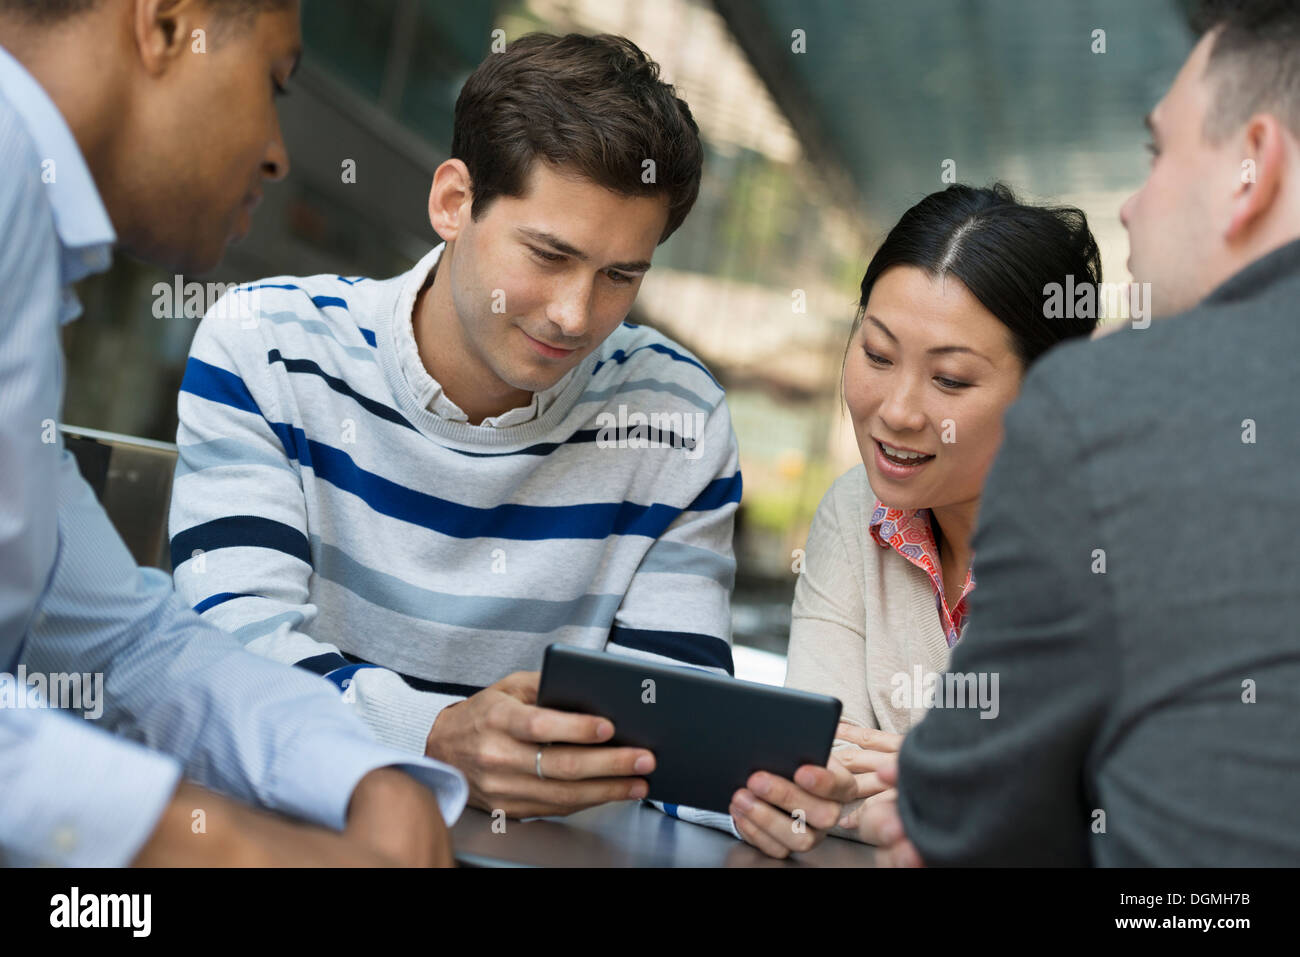 Business people on the move. Four people gathered around a digital tablet having a discussion. - Stock Image